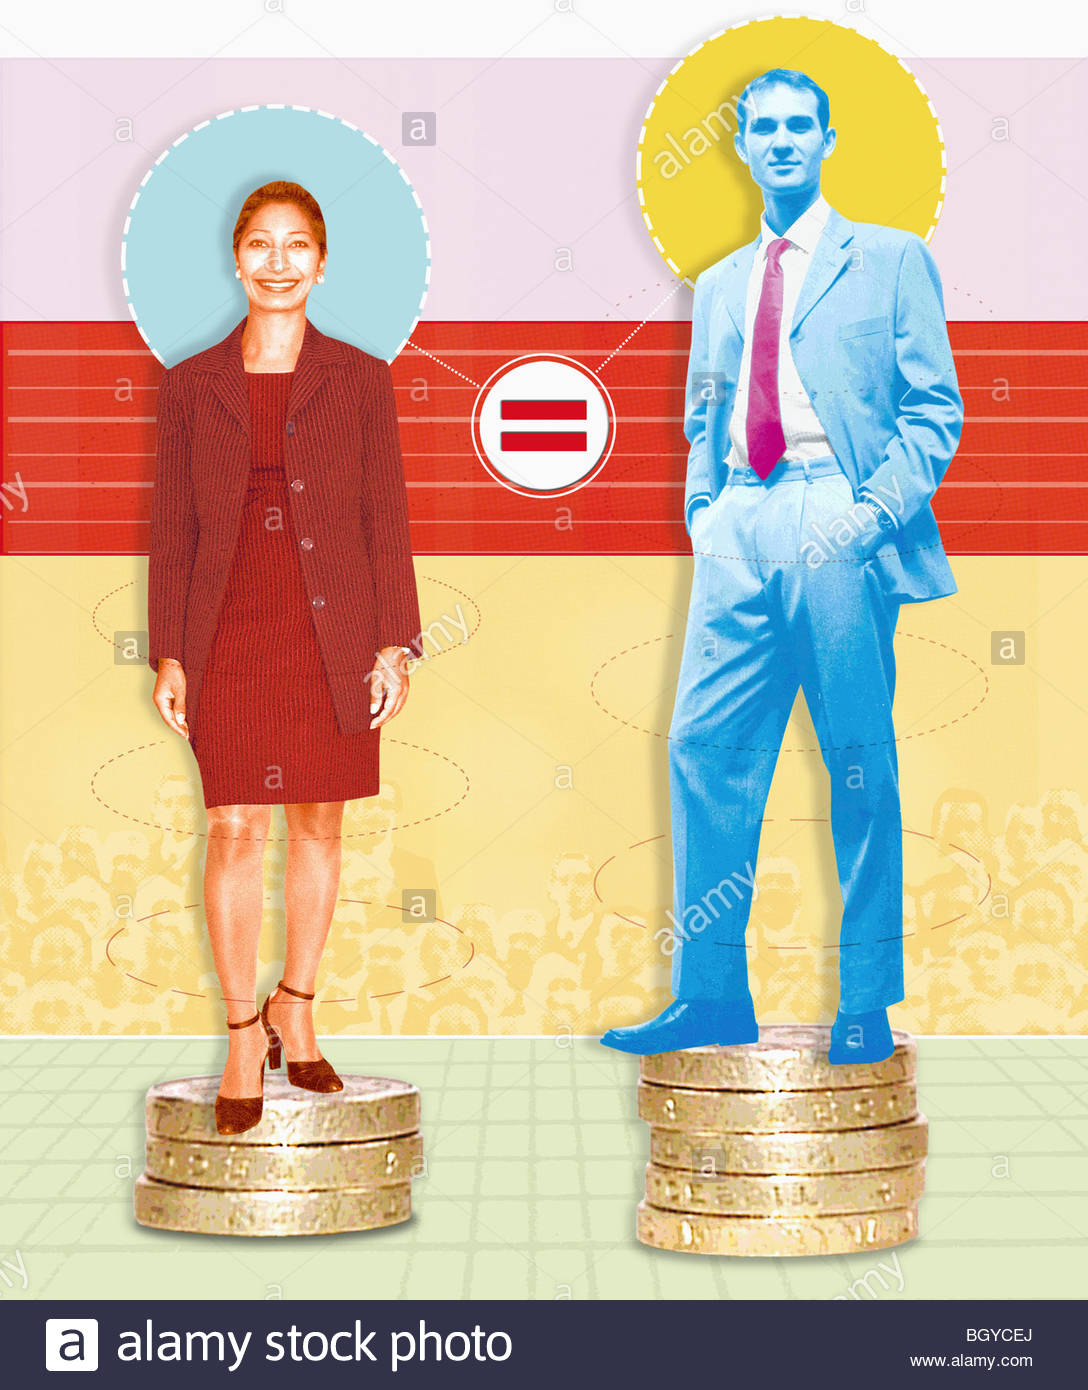 Unequal businessman and businesswoman - Stock Image